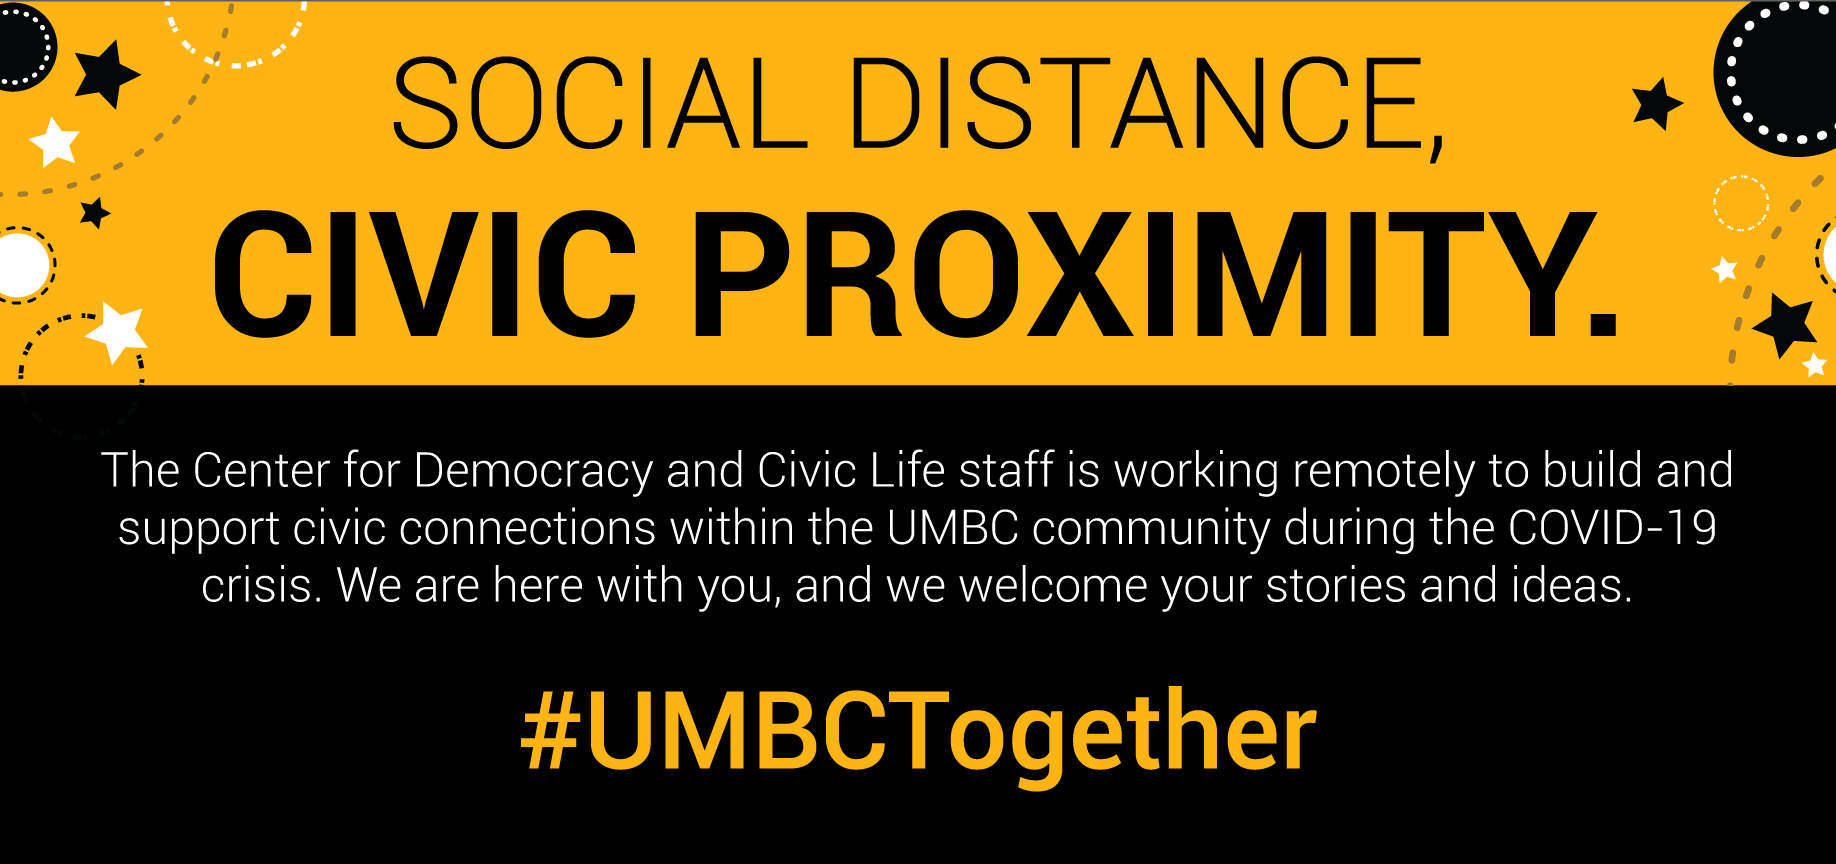 Social Distance, Civic Proximity: The Center for Democracy and Civic Life staff is working remotely to build and support civic connections within the UMBC community during the COVID-19 crisis. We are here with you, and we welcome your stories and ideas. #UMBCTogether